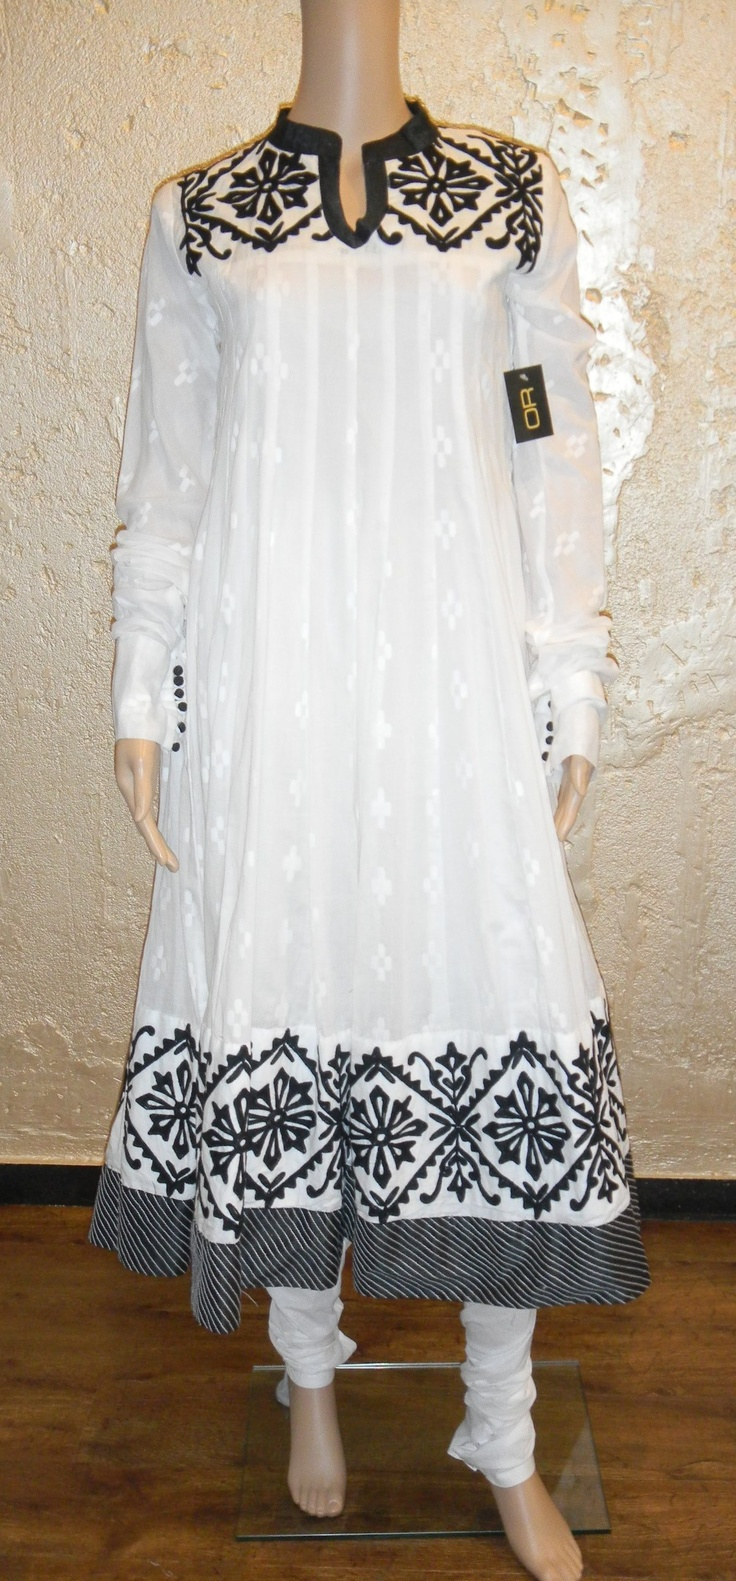 Cotton - Churidaar set Price - Rs. 5900/-